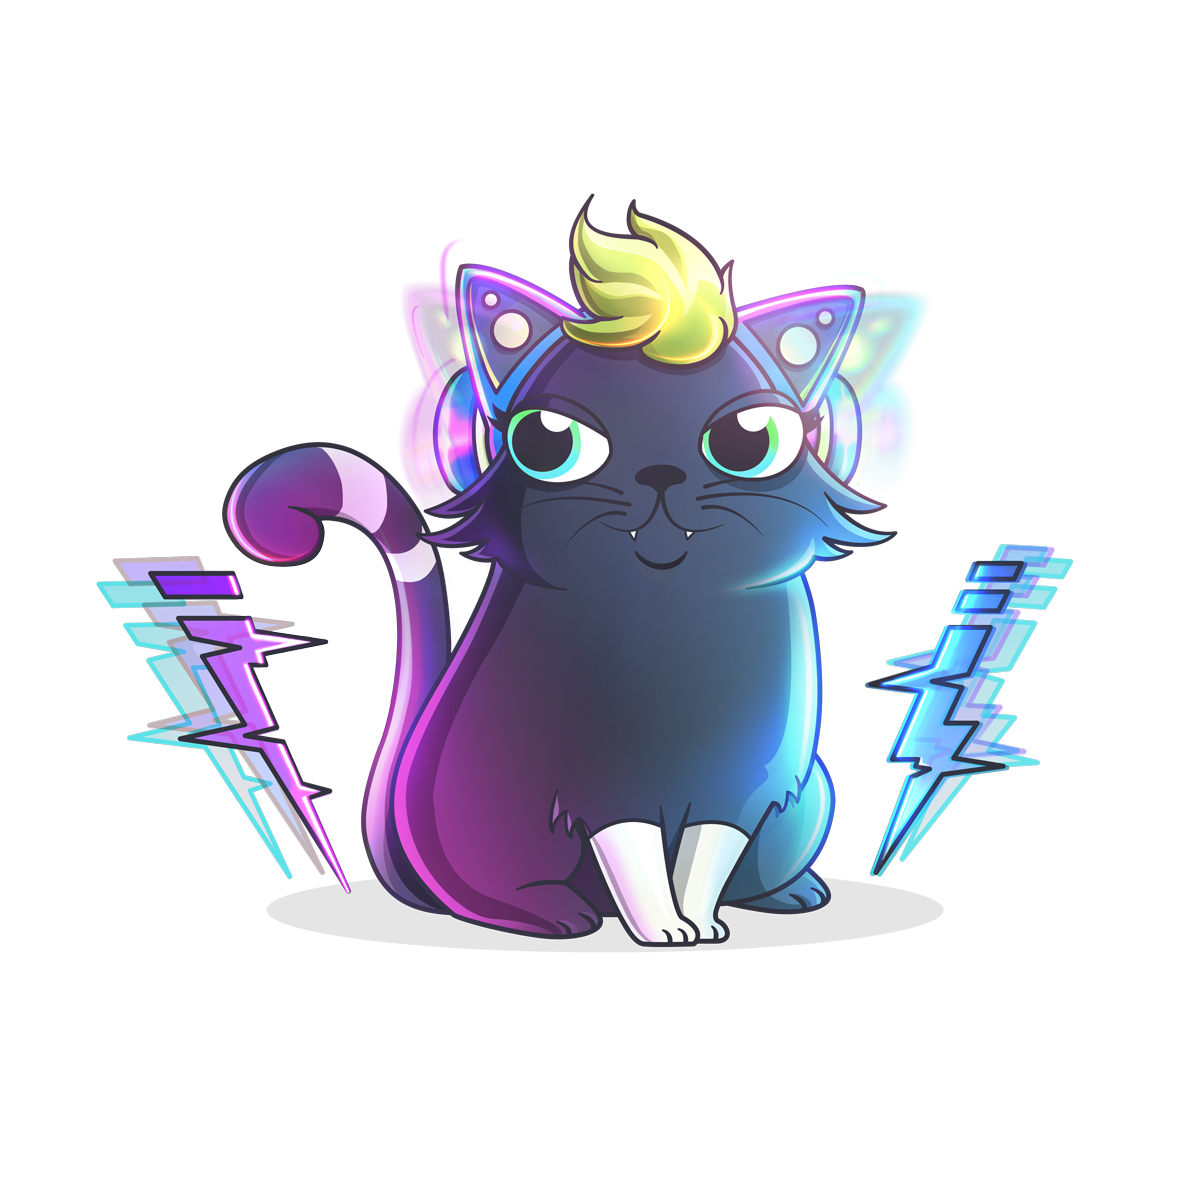 cryptokitty #1674166